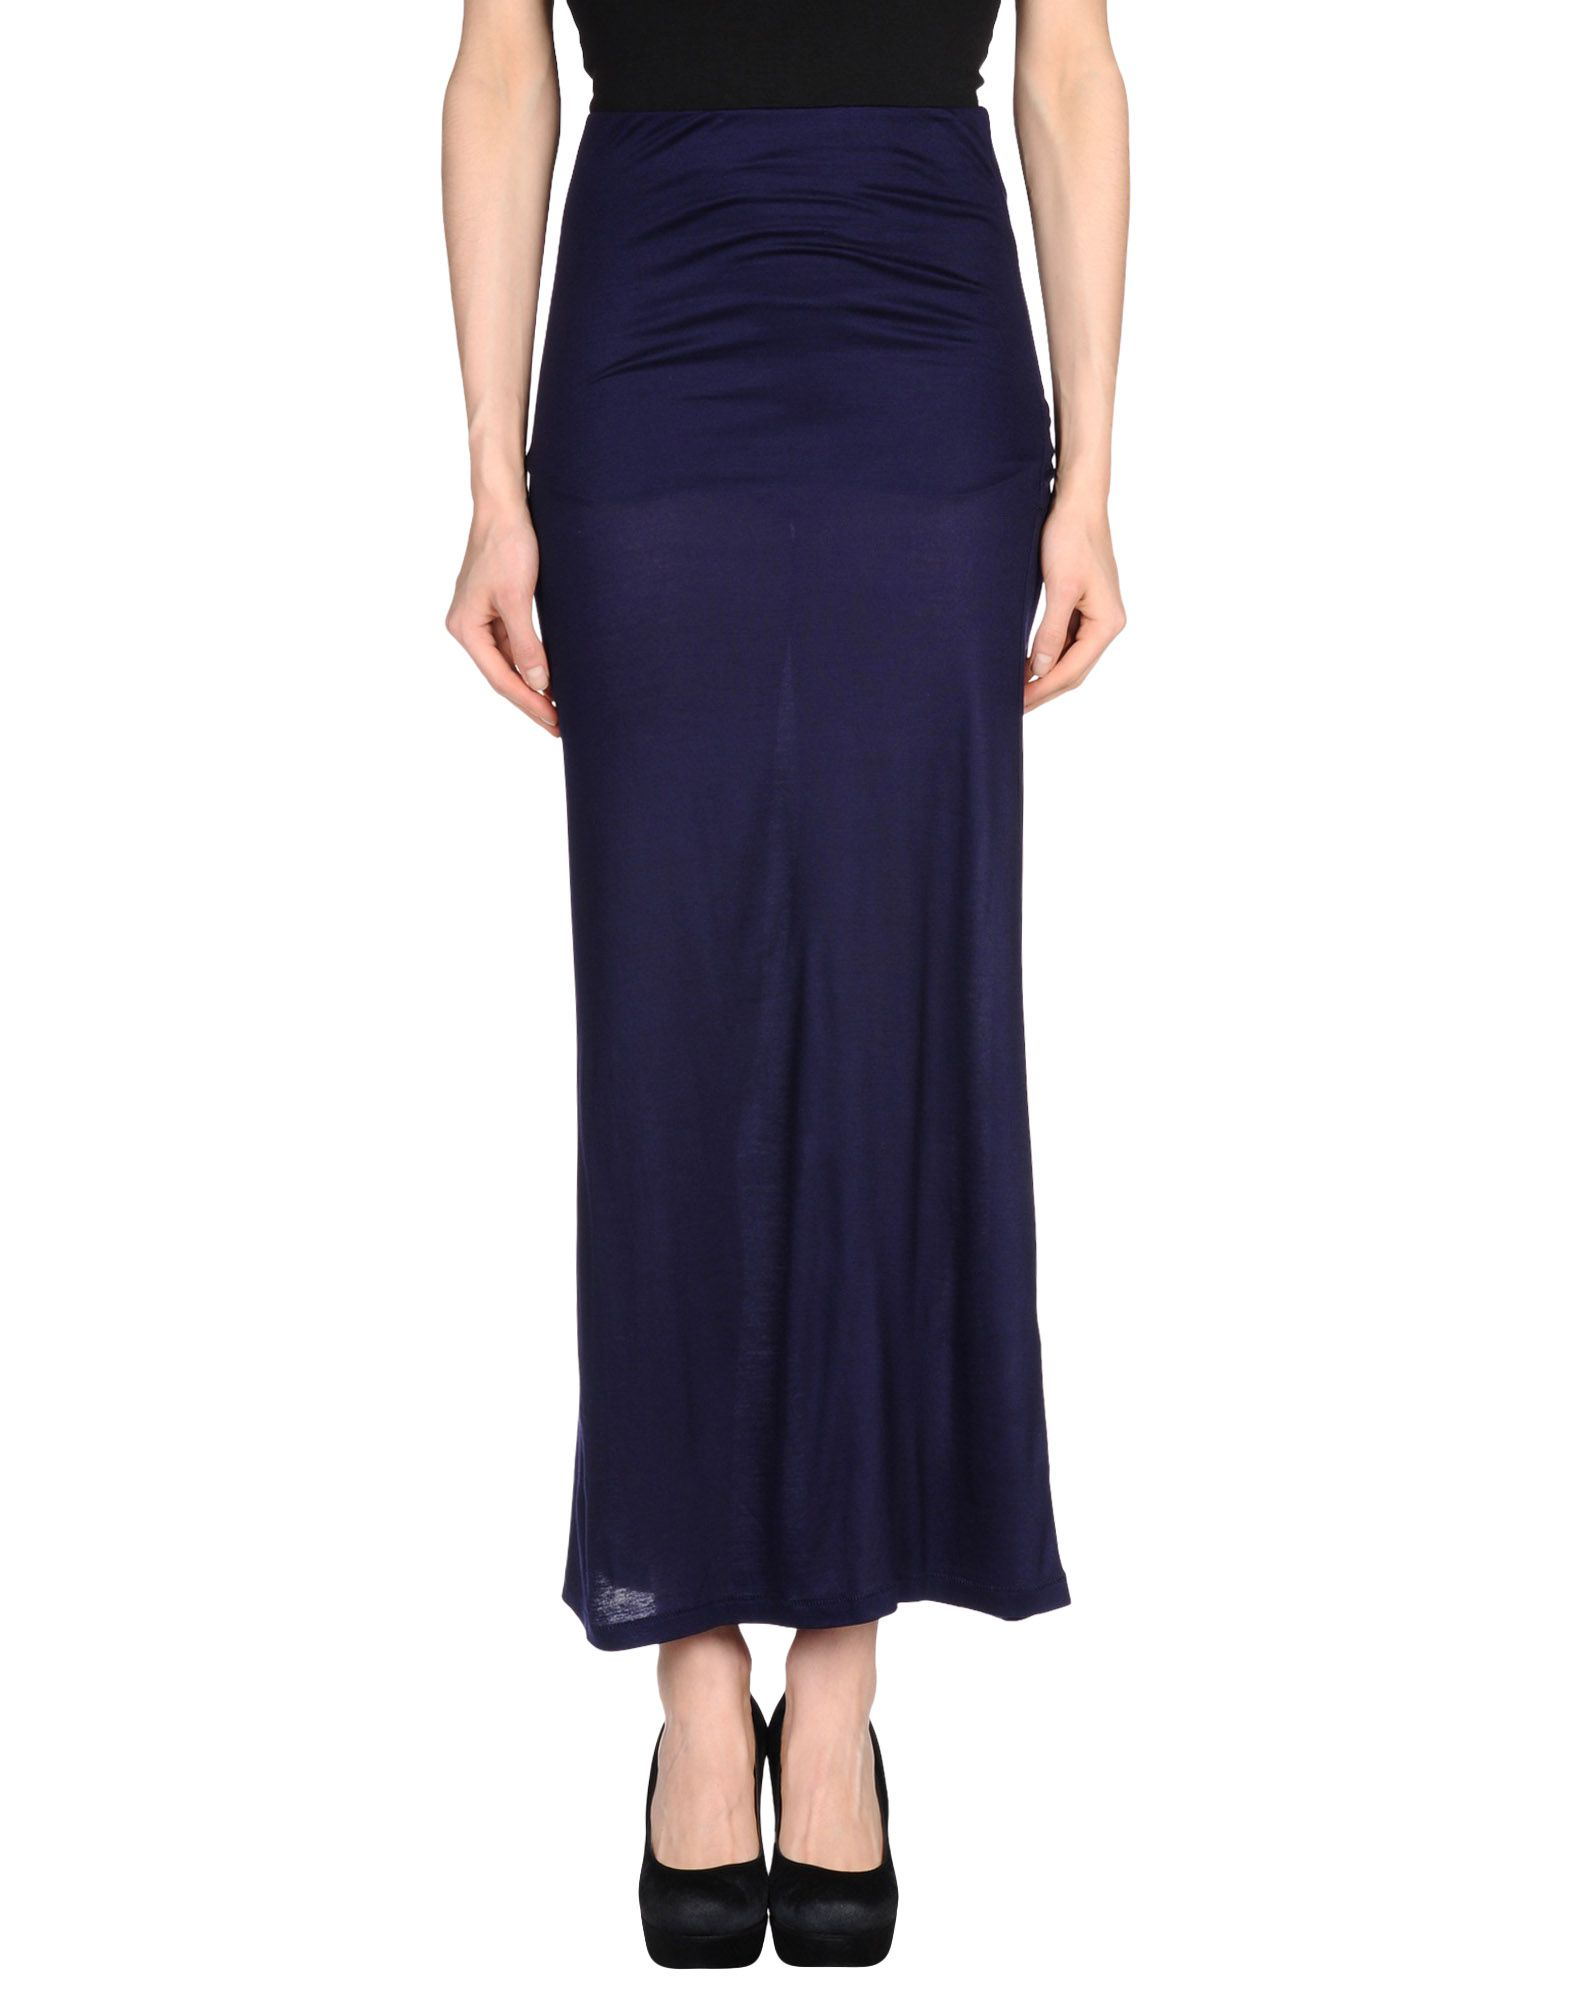 Shop our Collection of Women's Blue Long Skirts at nichapie.ml for the Latest Designer Brands & Styles. FREE SHIPPING AVAILABLE!